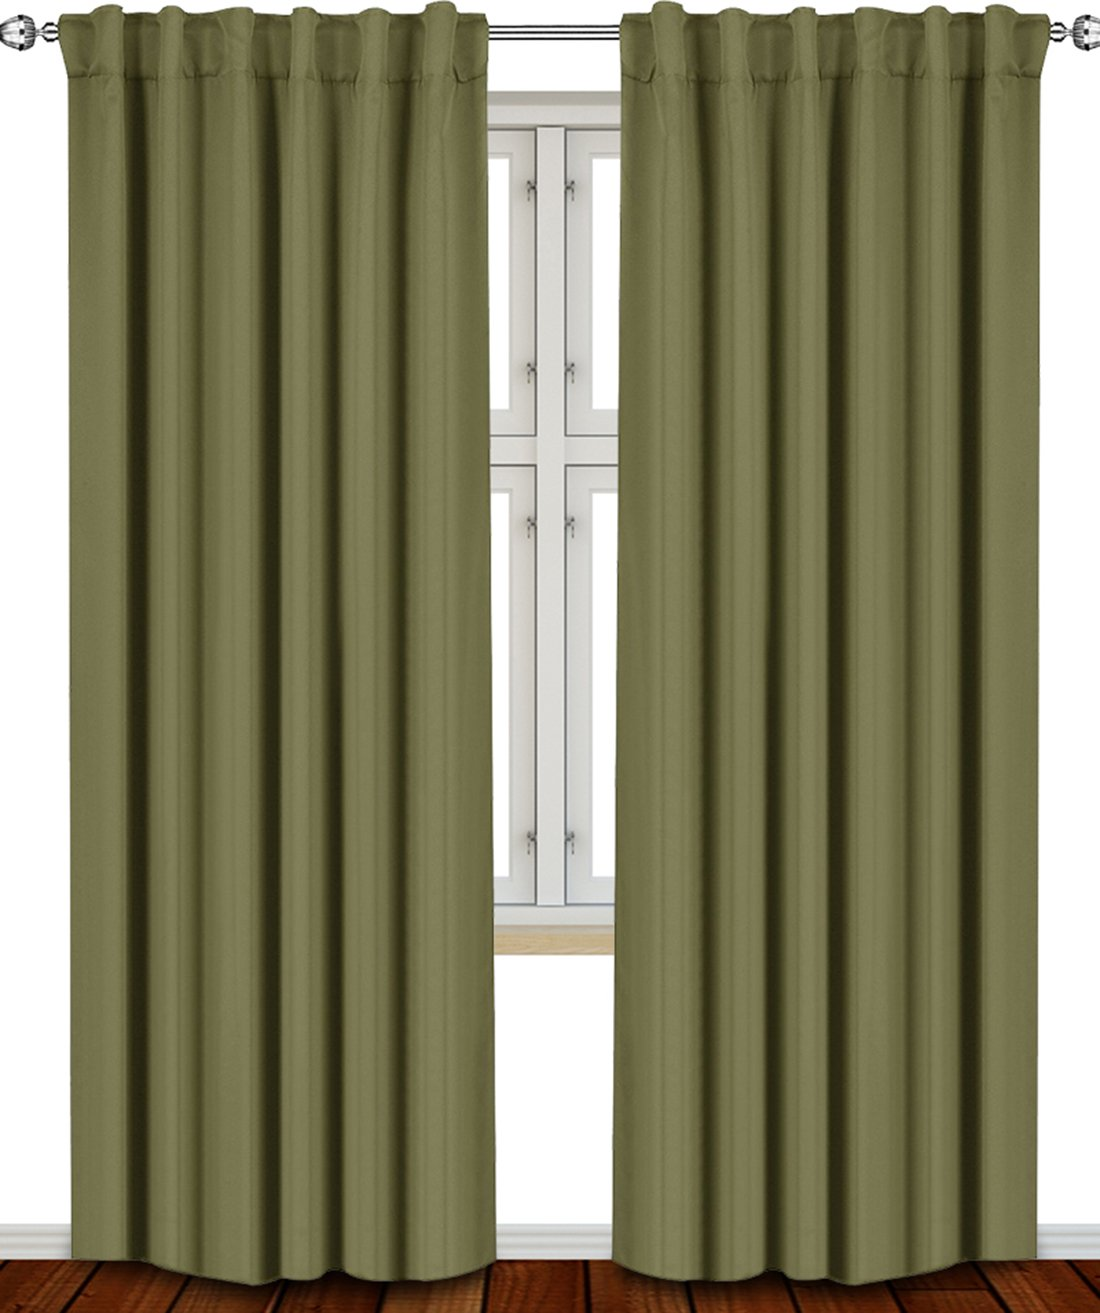 willow in fiber tree leave garden living drapes polyester curtains curtain kitchen bedroom panel for blinds on item home from room sheer